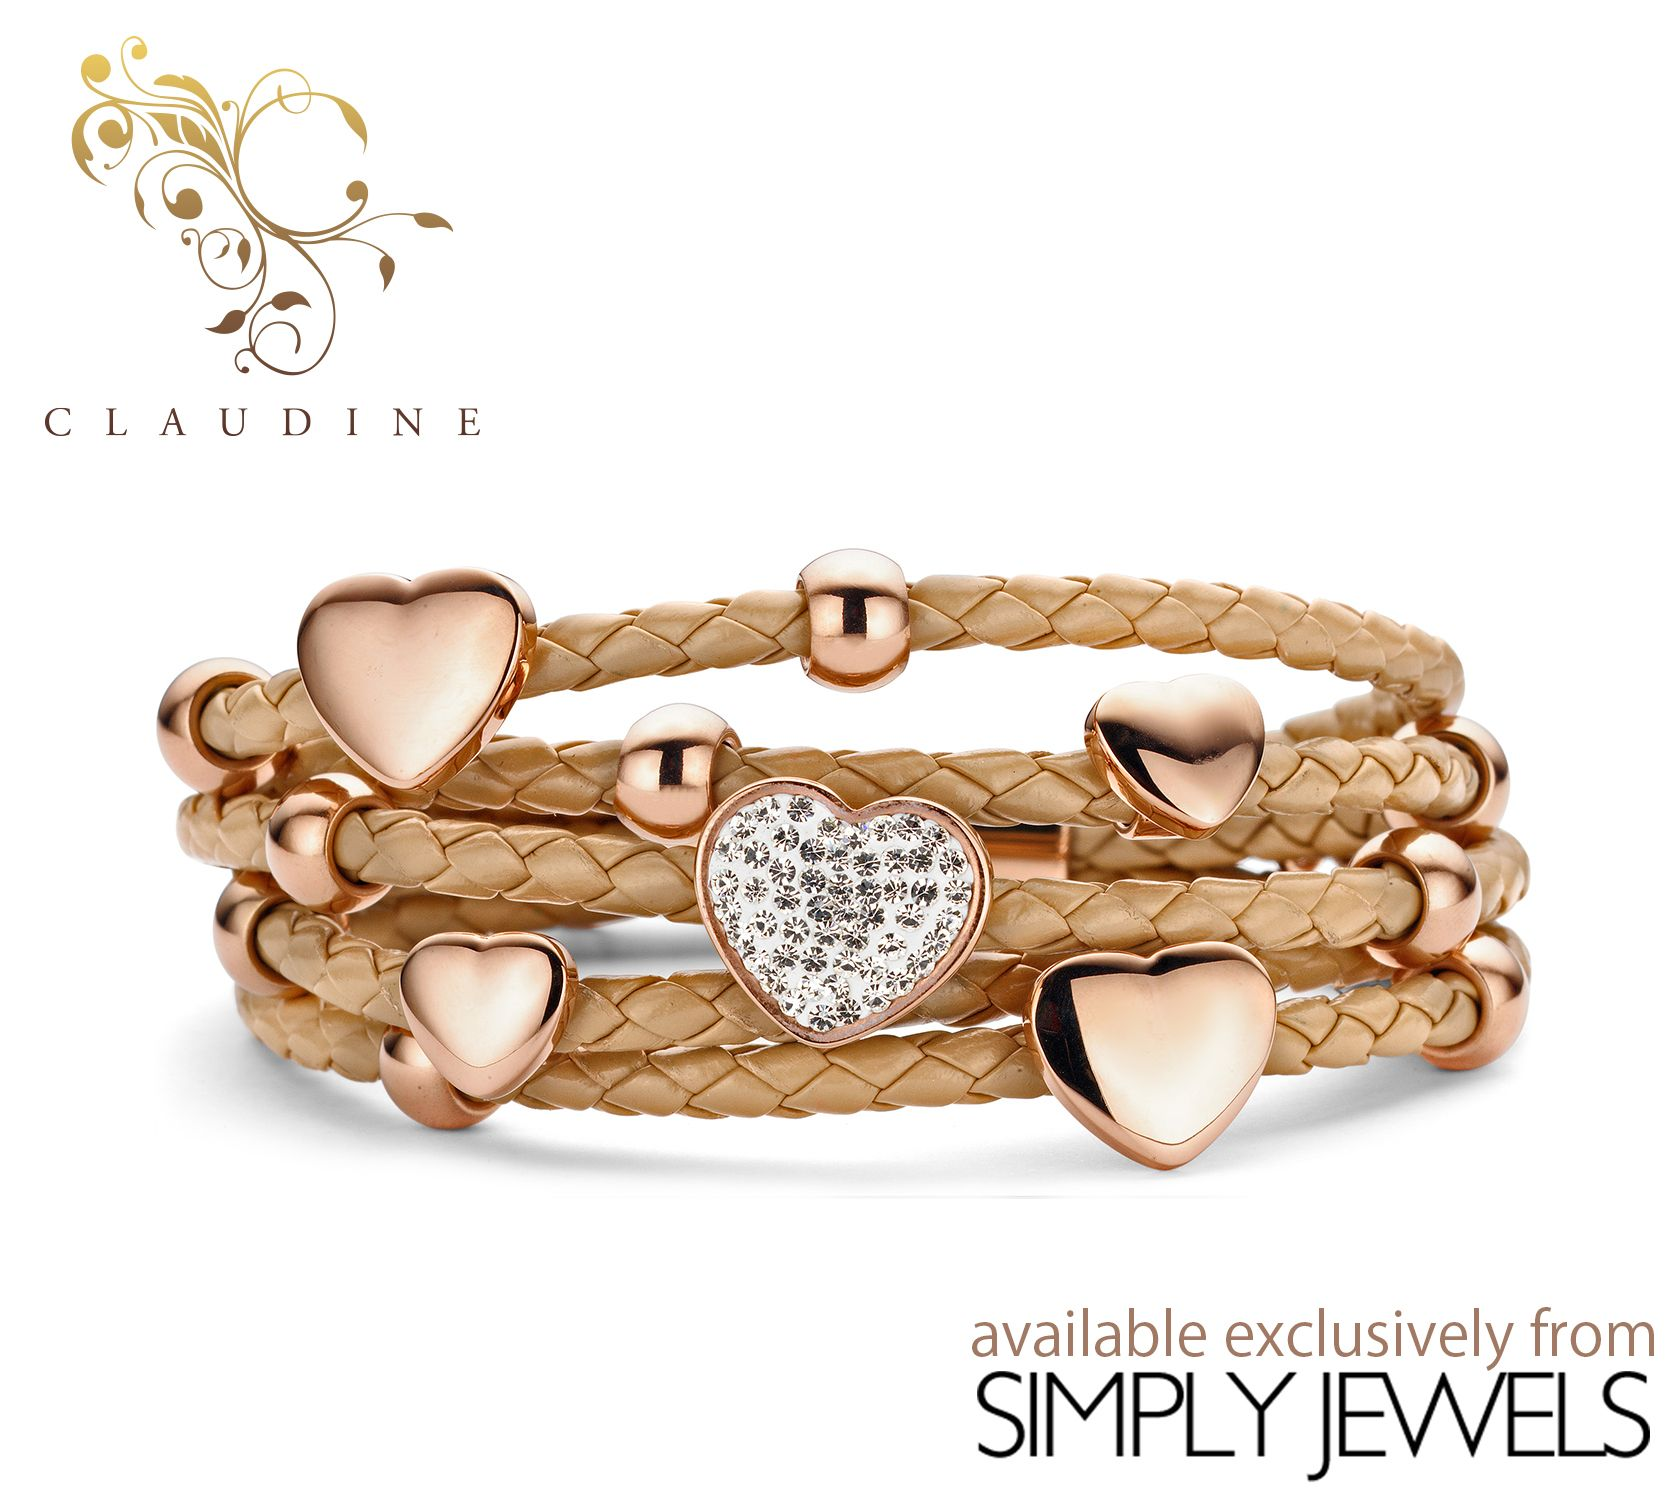 #Claudine Brown CZ Hearts & Rings #Leather Bracelet with #Rose Plated Stainless #Steel -xx- #brandnew #jewellery #collection #loveit http://simplyjewels.biz/view_product.php?id=2254